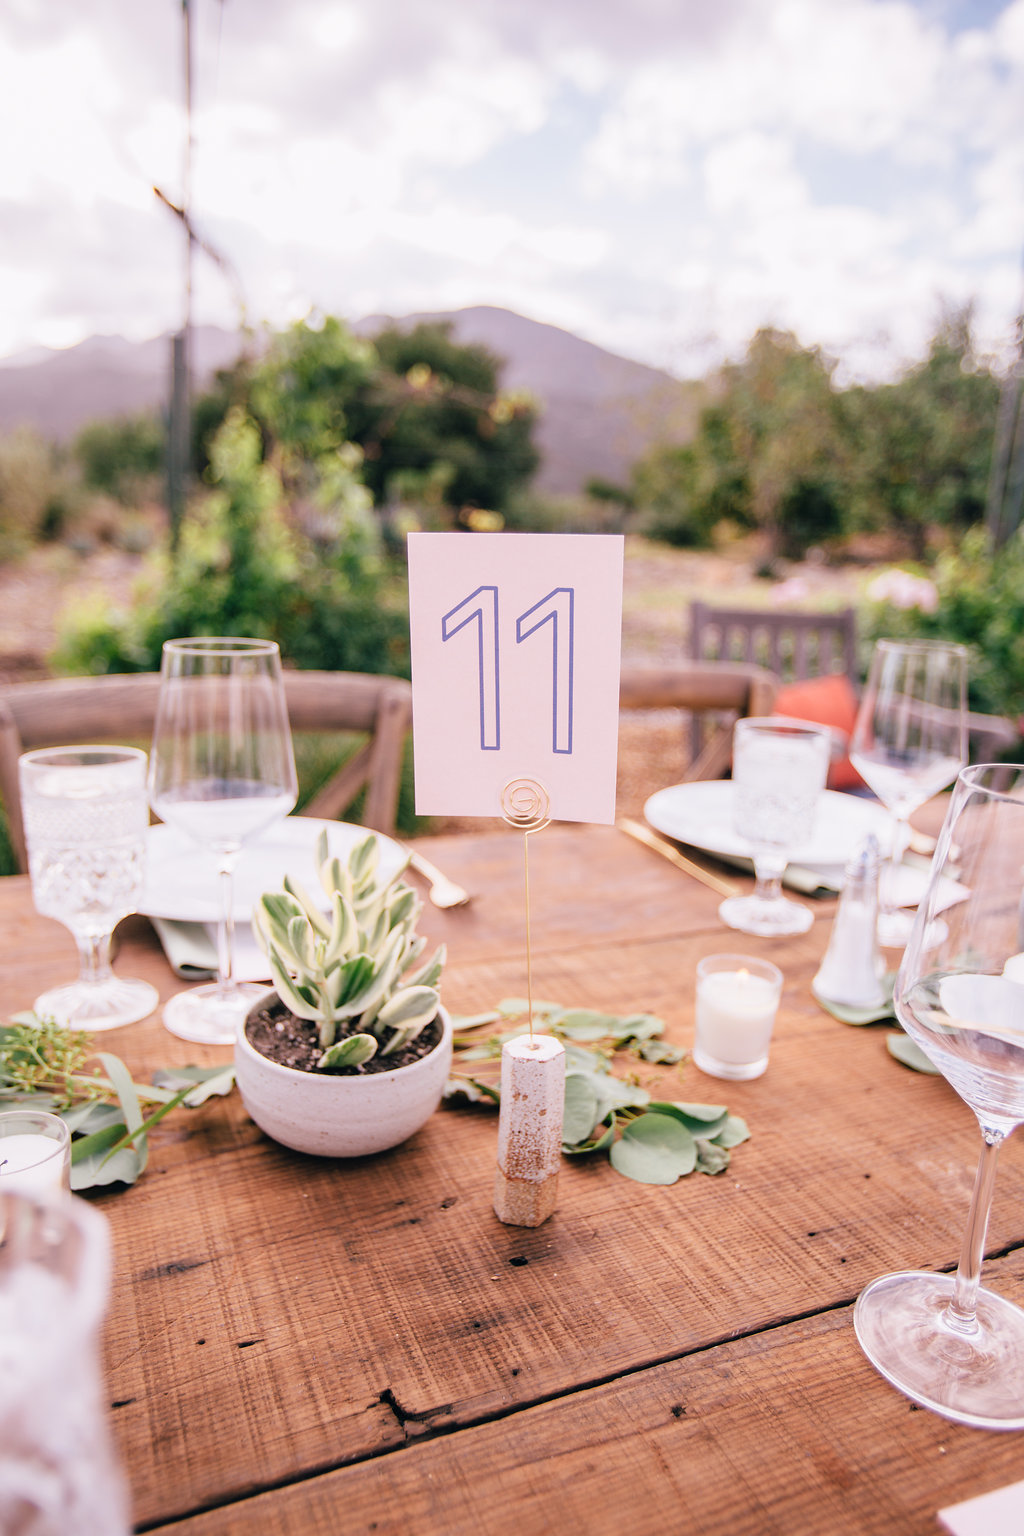 desert wedding reception table setting with cork table number and succulent centerpieces